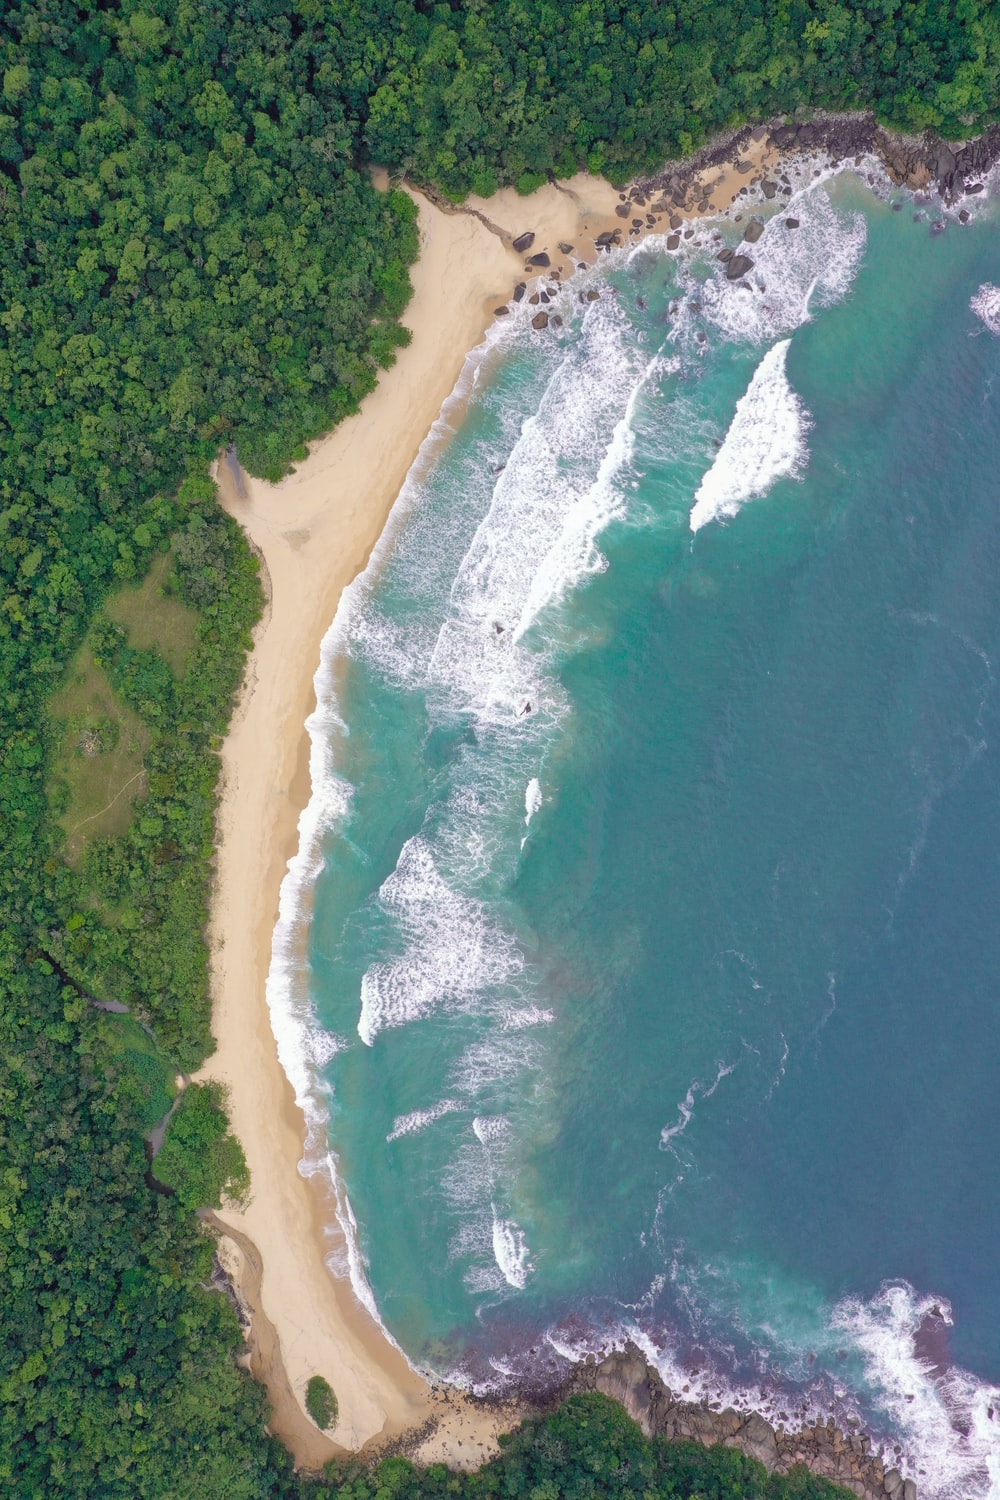 aerial view of seashore near trees during daytime